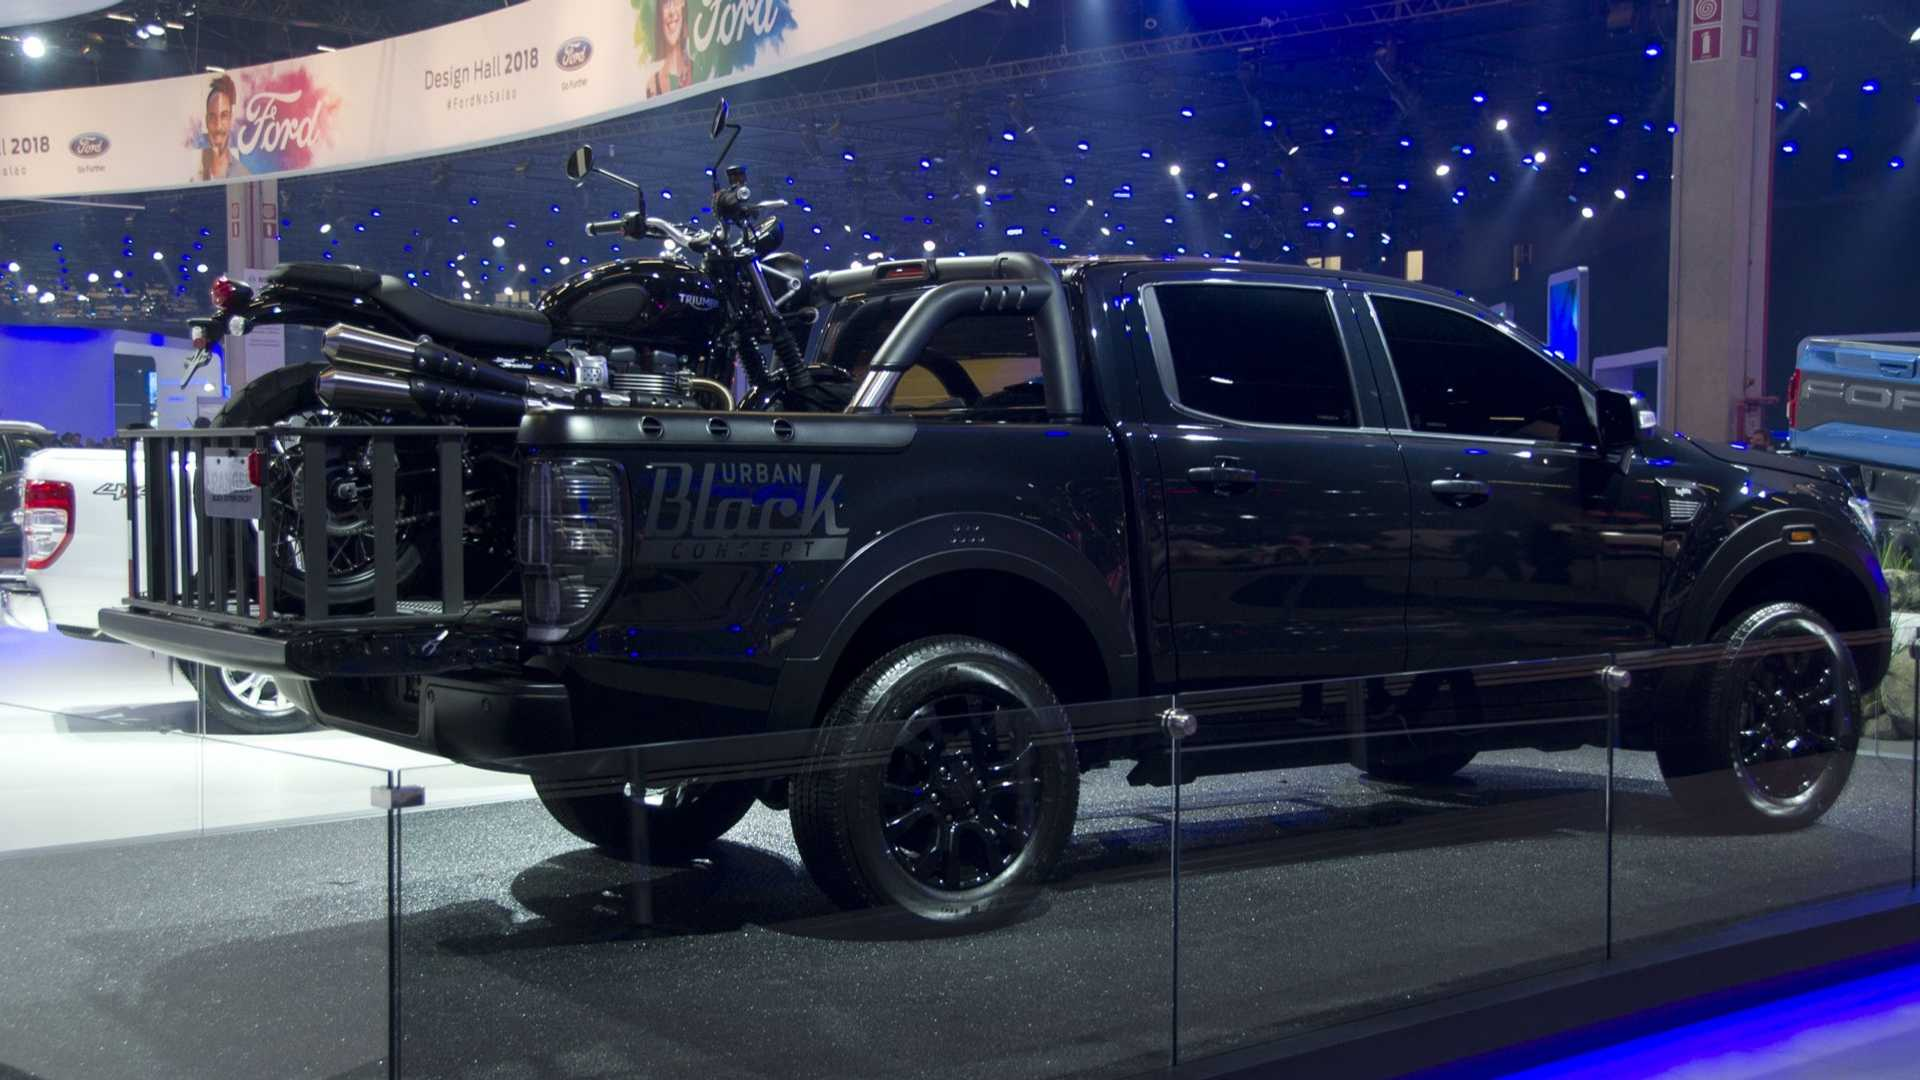 Ford Ranger Storm Black Edition Debut As Darkly Styled Trucks